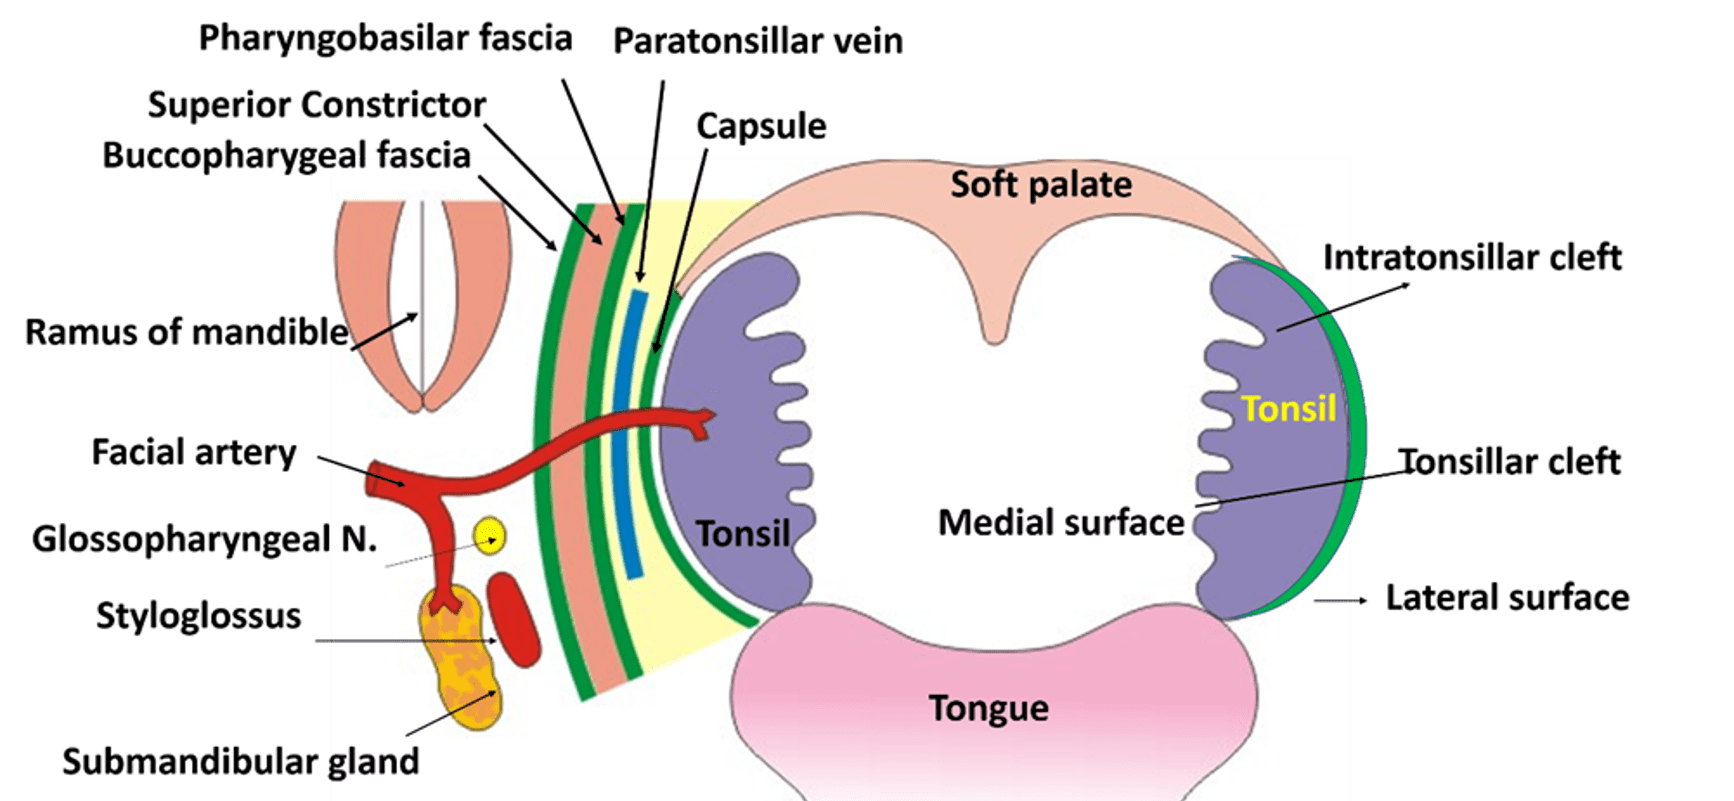 Unique Palatine Tonsil Ensign - Physiology Of Human Body Images ...